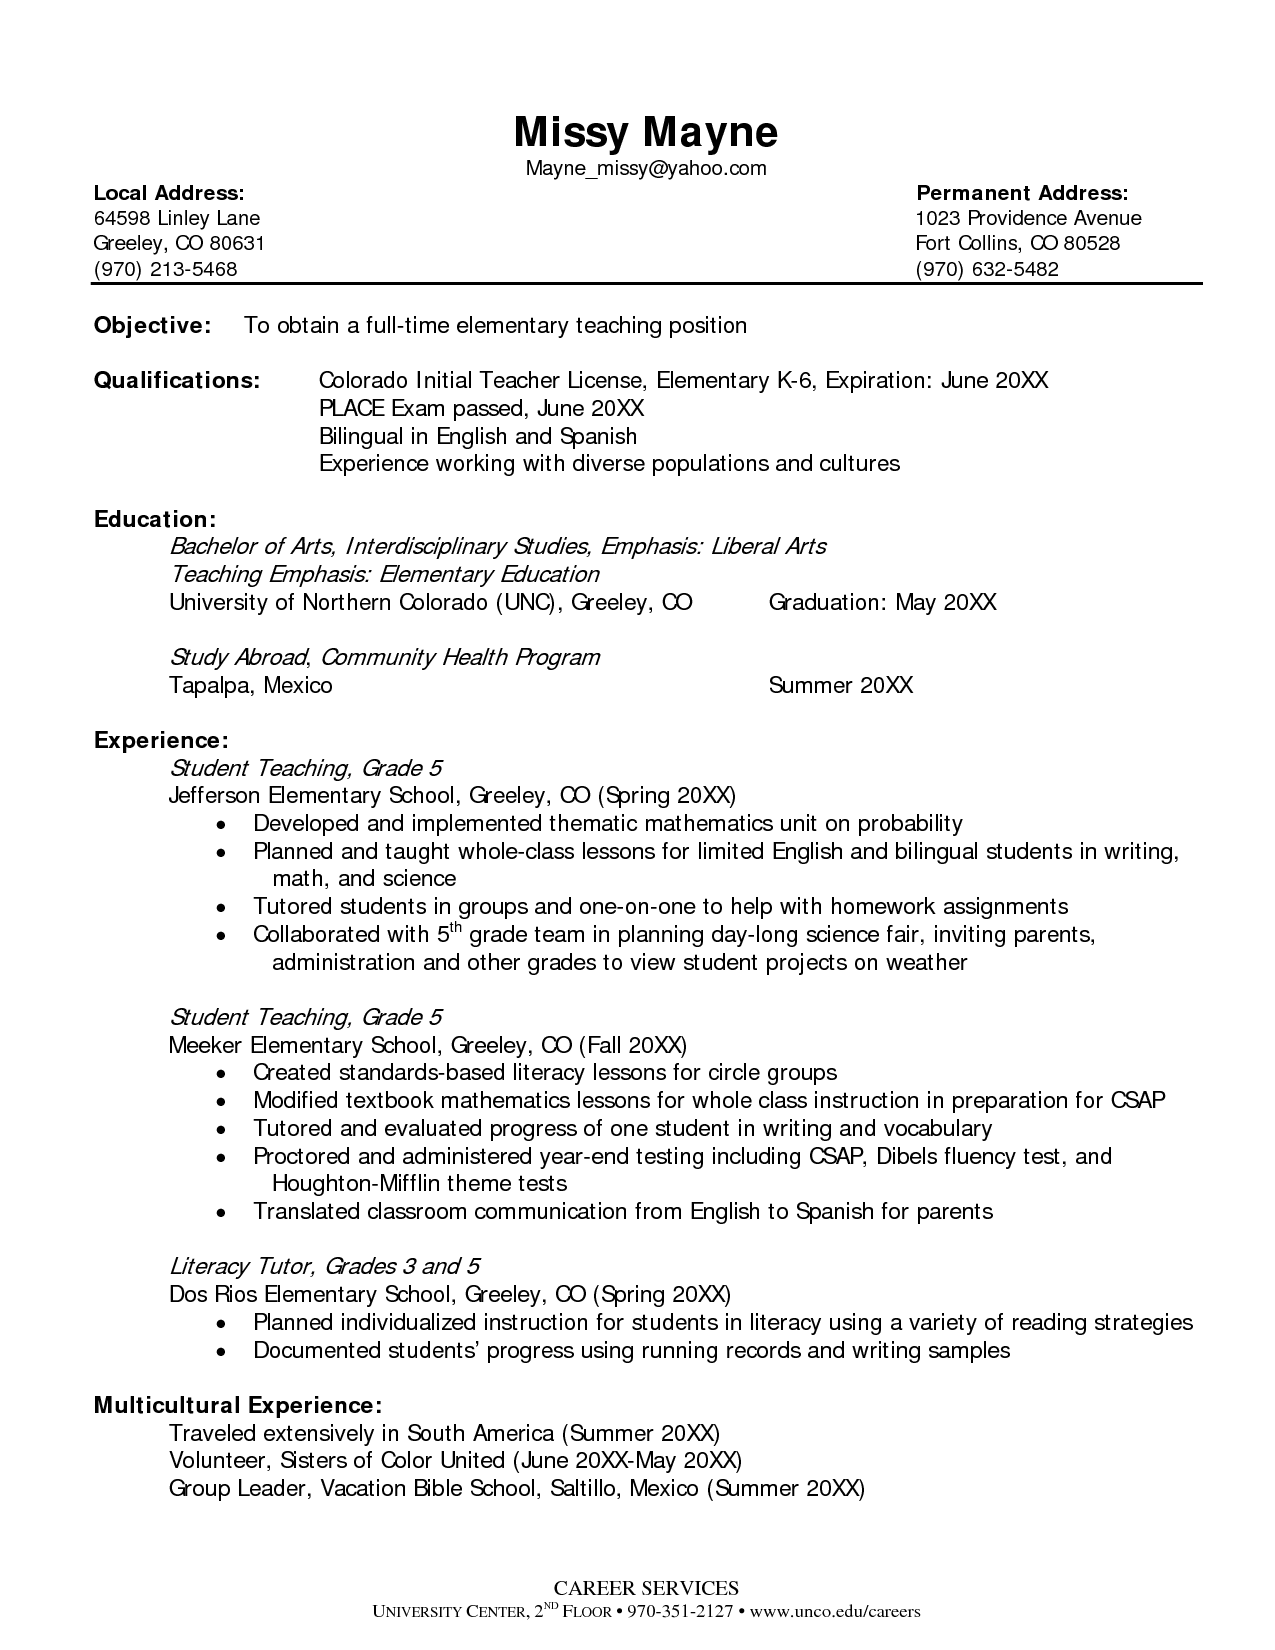 Resume Objective Statement Examples For Teachers